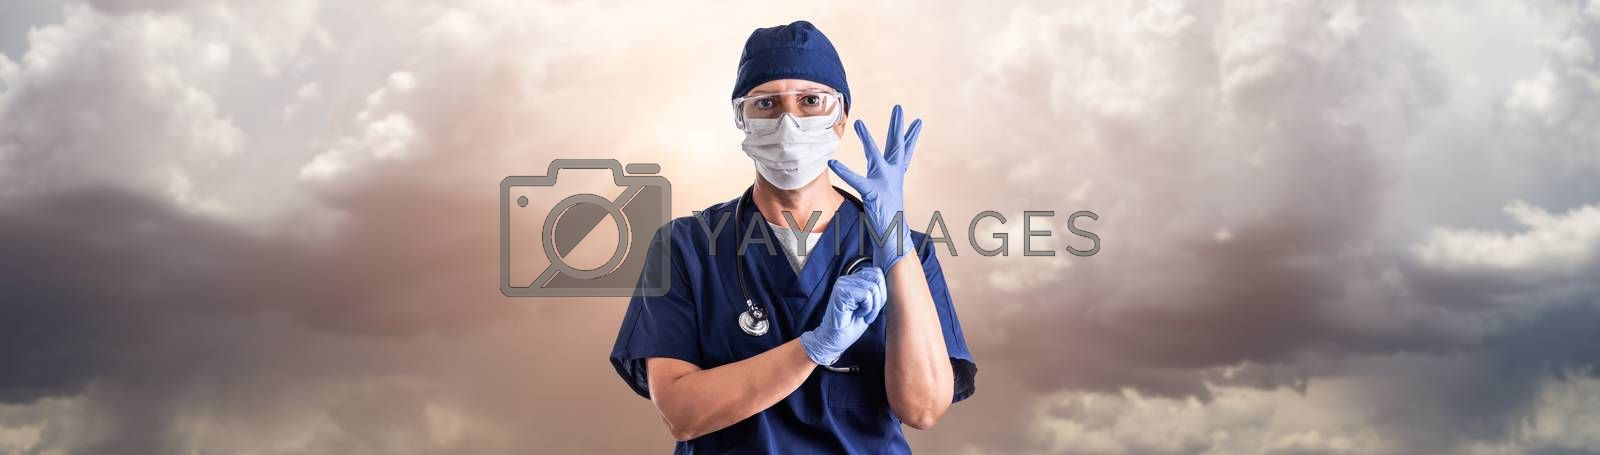 Doctor or Nurse Adjusting Surgical Gloves Wearing Personal Protective Equipment Over Ominous Clouds.